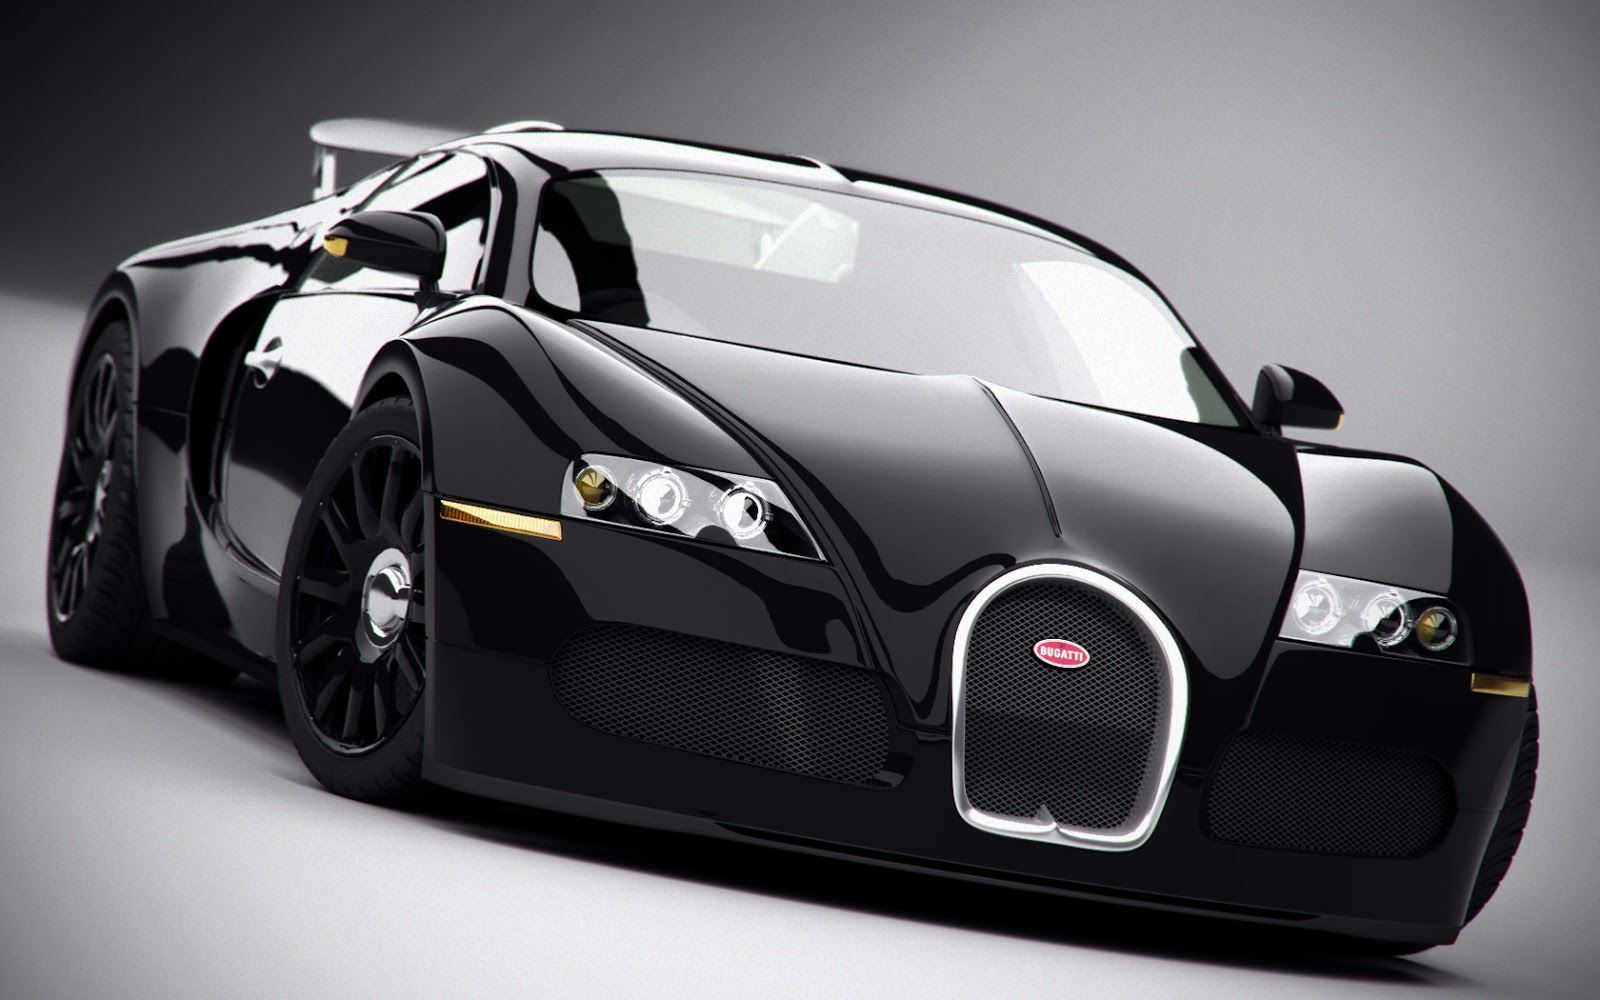 Collection Of Wallpapers Cars On Hdwallpapers X Hd Wallpapers Of Cars  Wallpapers